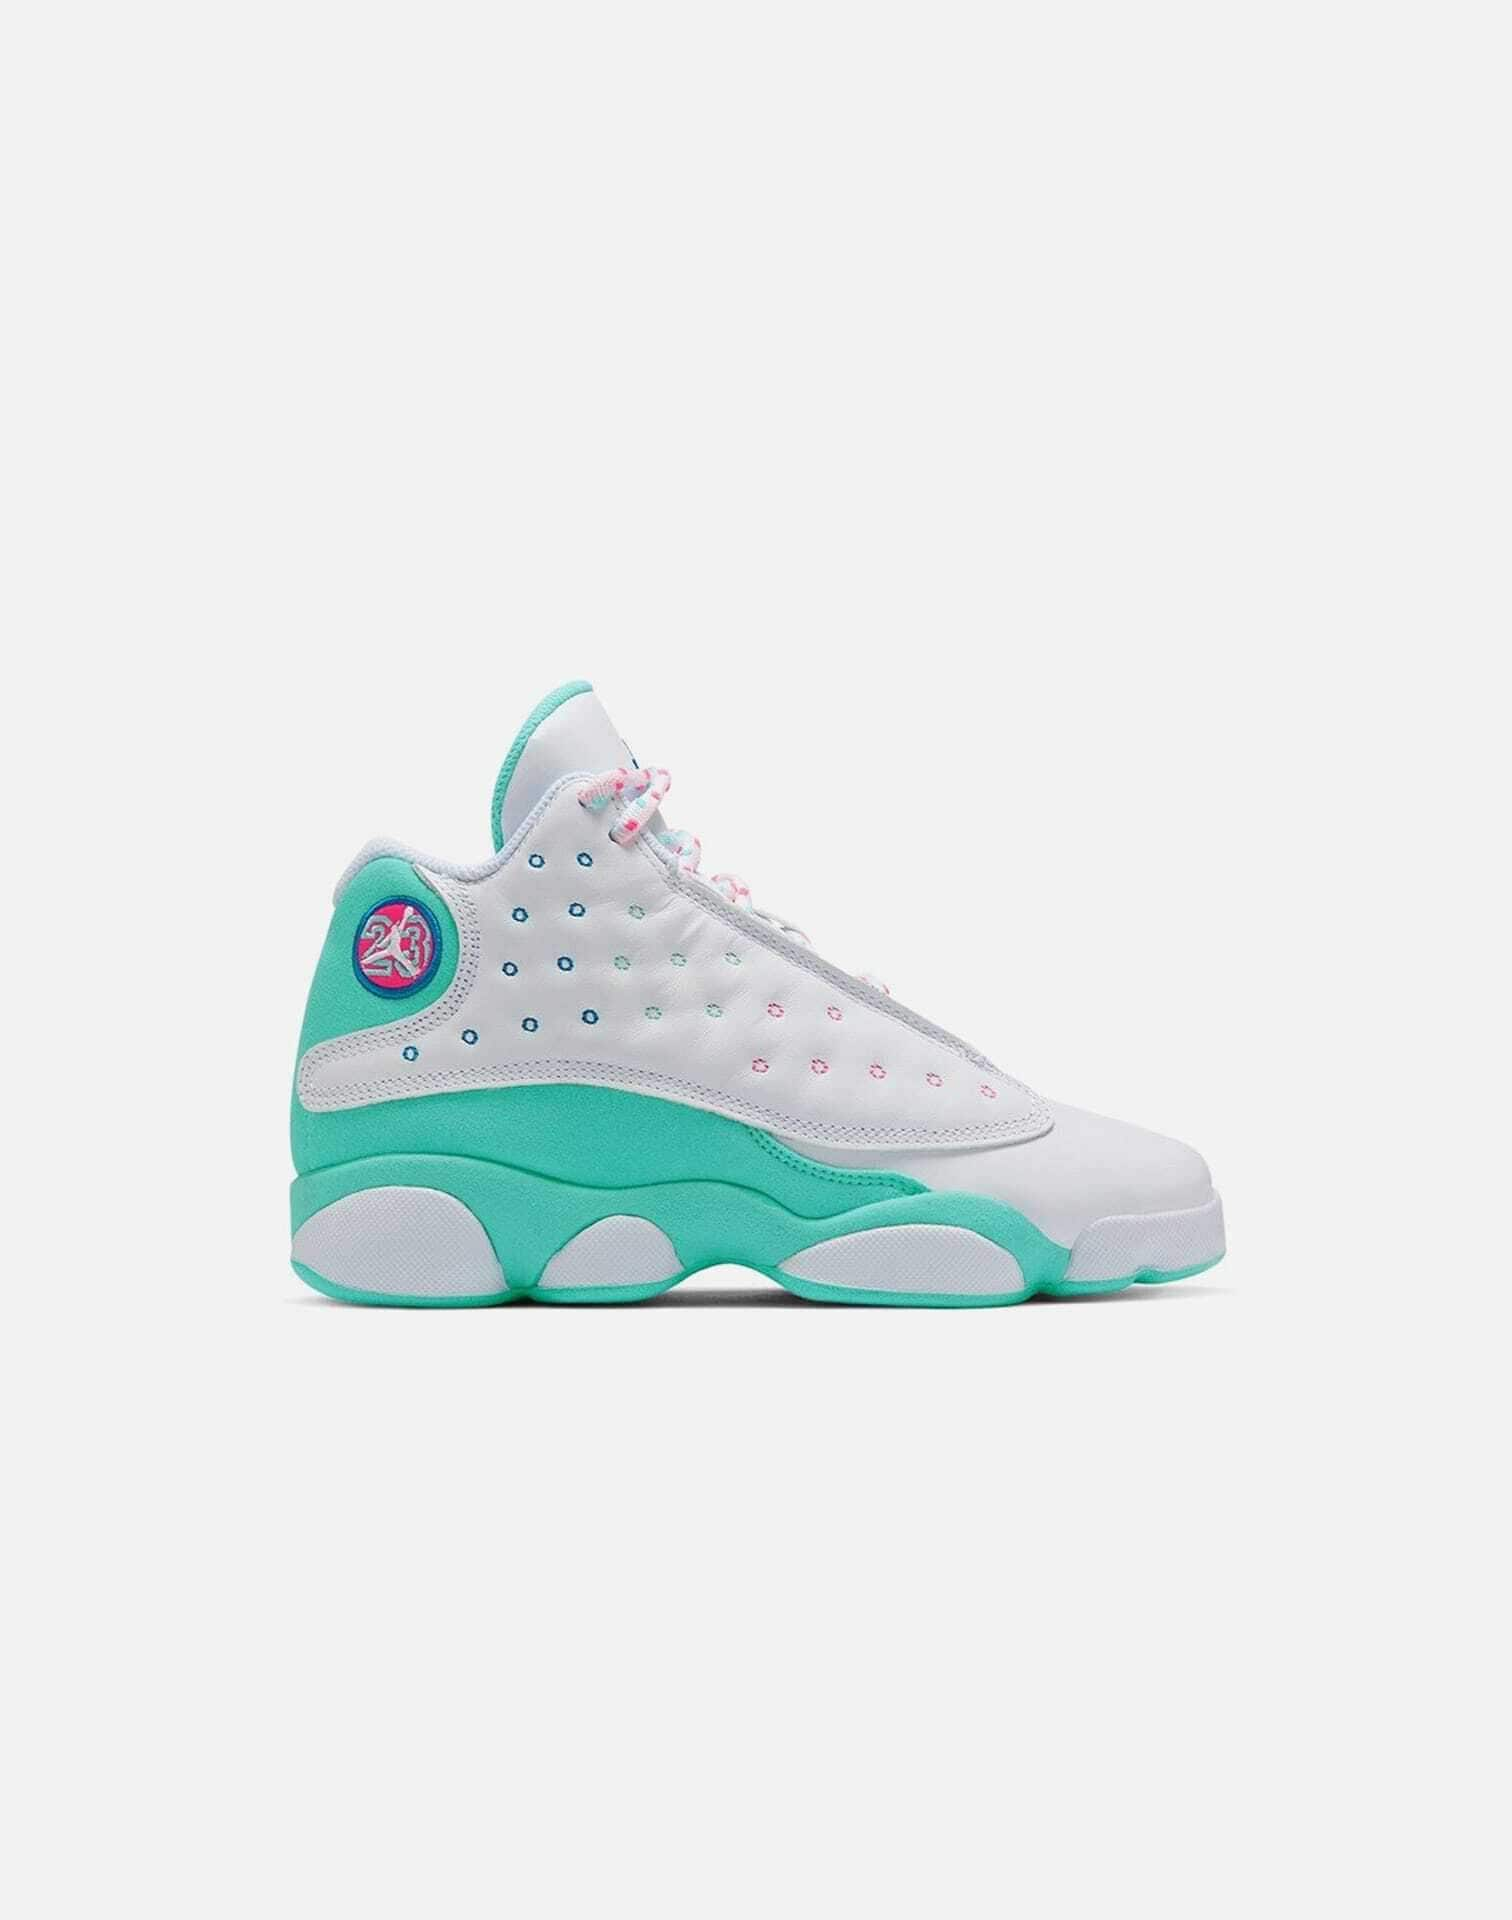 Jordan AIR JORDAN RETRO 13 'AURORA GREEN' GRADE-SCHOOL